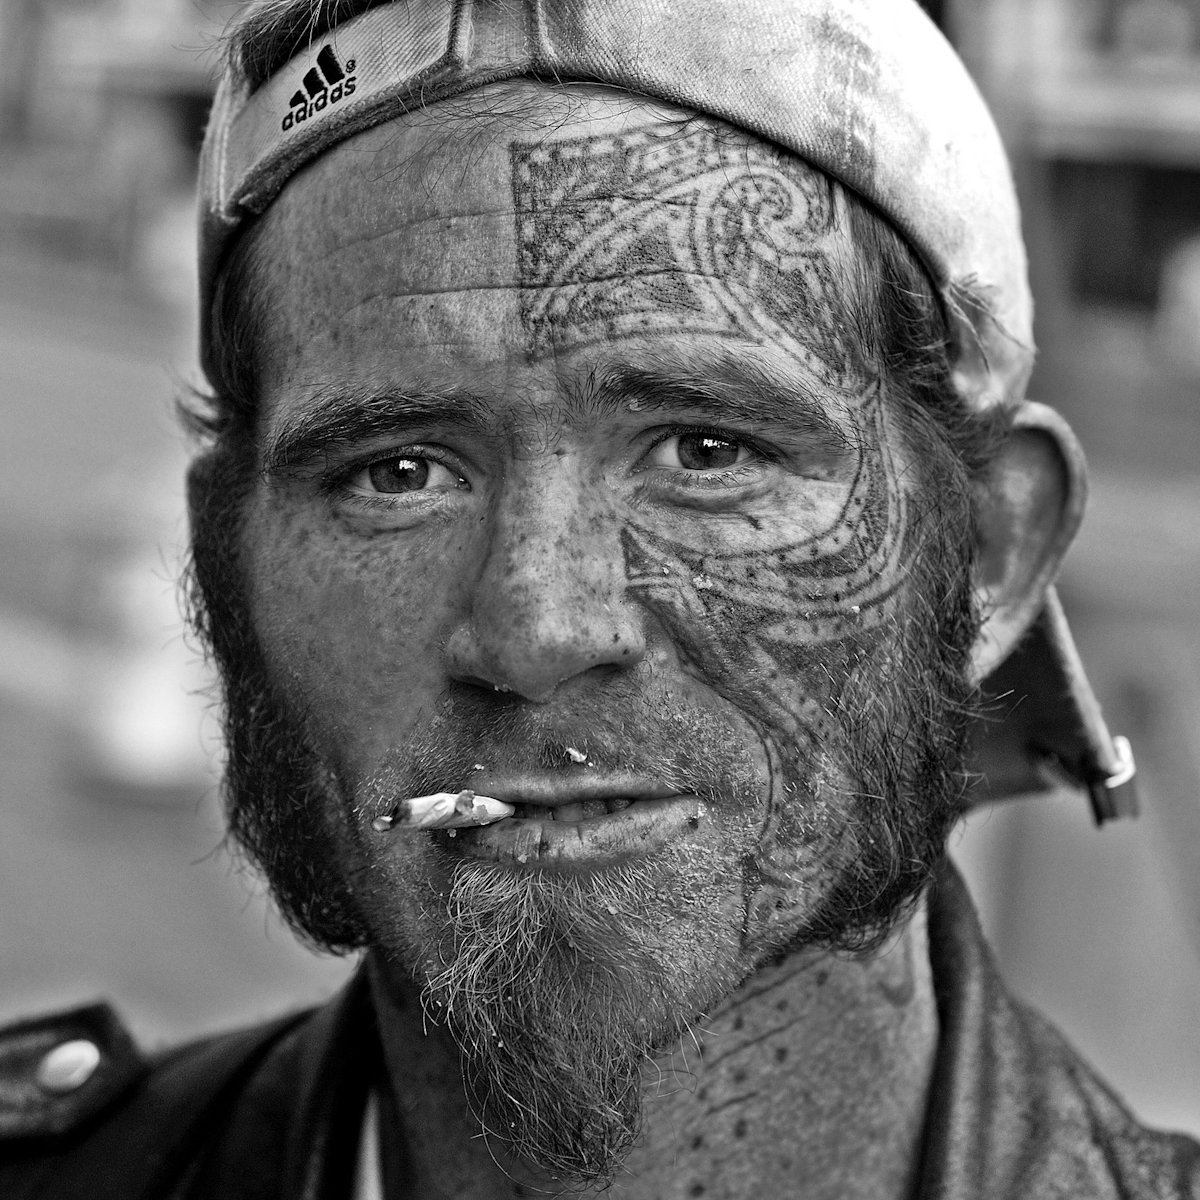 DRIFTER LEIF WITH FACE TATTOO IN TENDERLOIN, SAN FRANCISCO, MAY 2006homeless man from texas. he's off to los angeles as soon as he can scrape together the cash. got his tattoo done years ago at a place called the mystic mark.when i first saw him, he was checking through some leaves by the curb. he has debris on his face.his name is leif; pronounced {quote}life.{quote}(5/3/06)